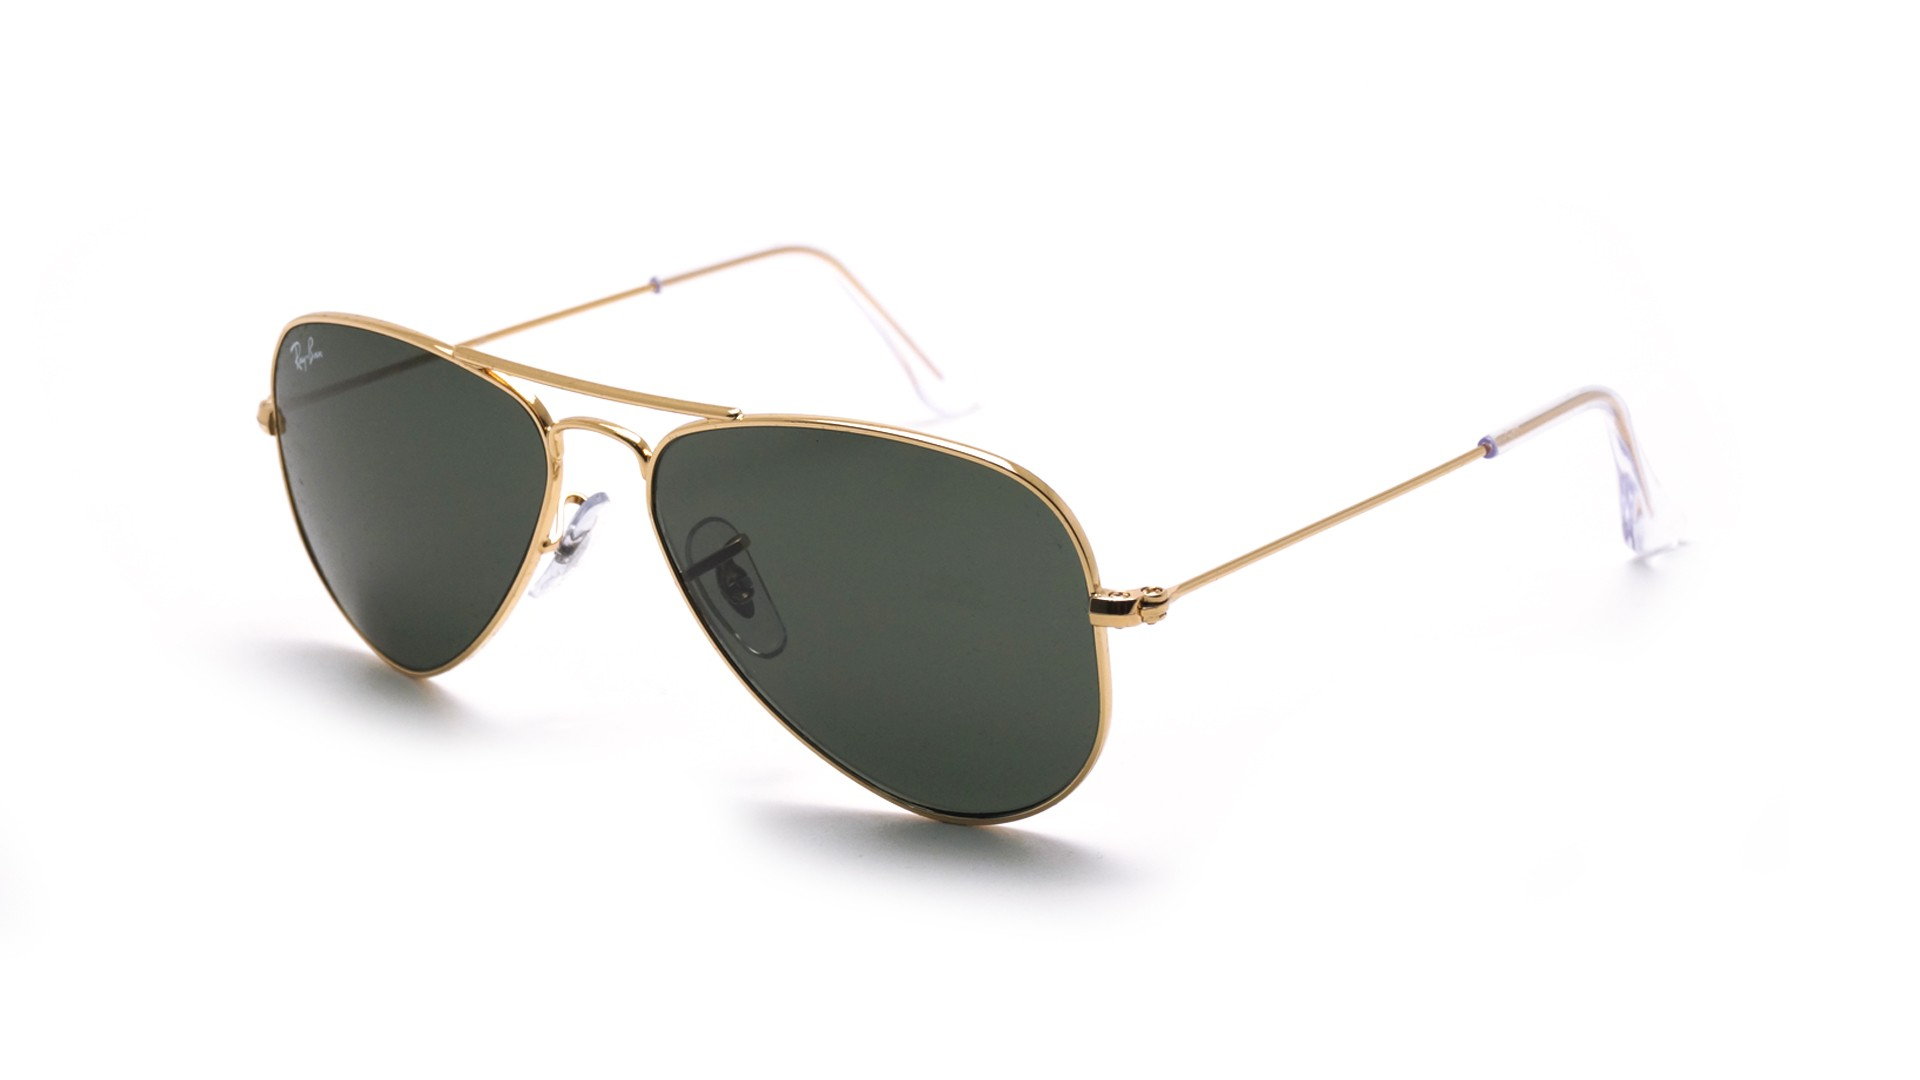 9fc62aeaf Sunglasses Ray-Ban Aviator Gold G-15 RB3044 L0207 52-14 Small